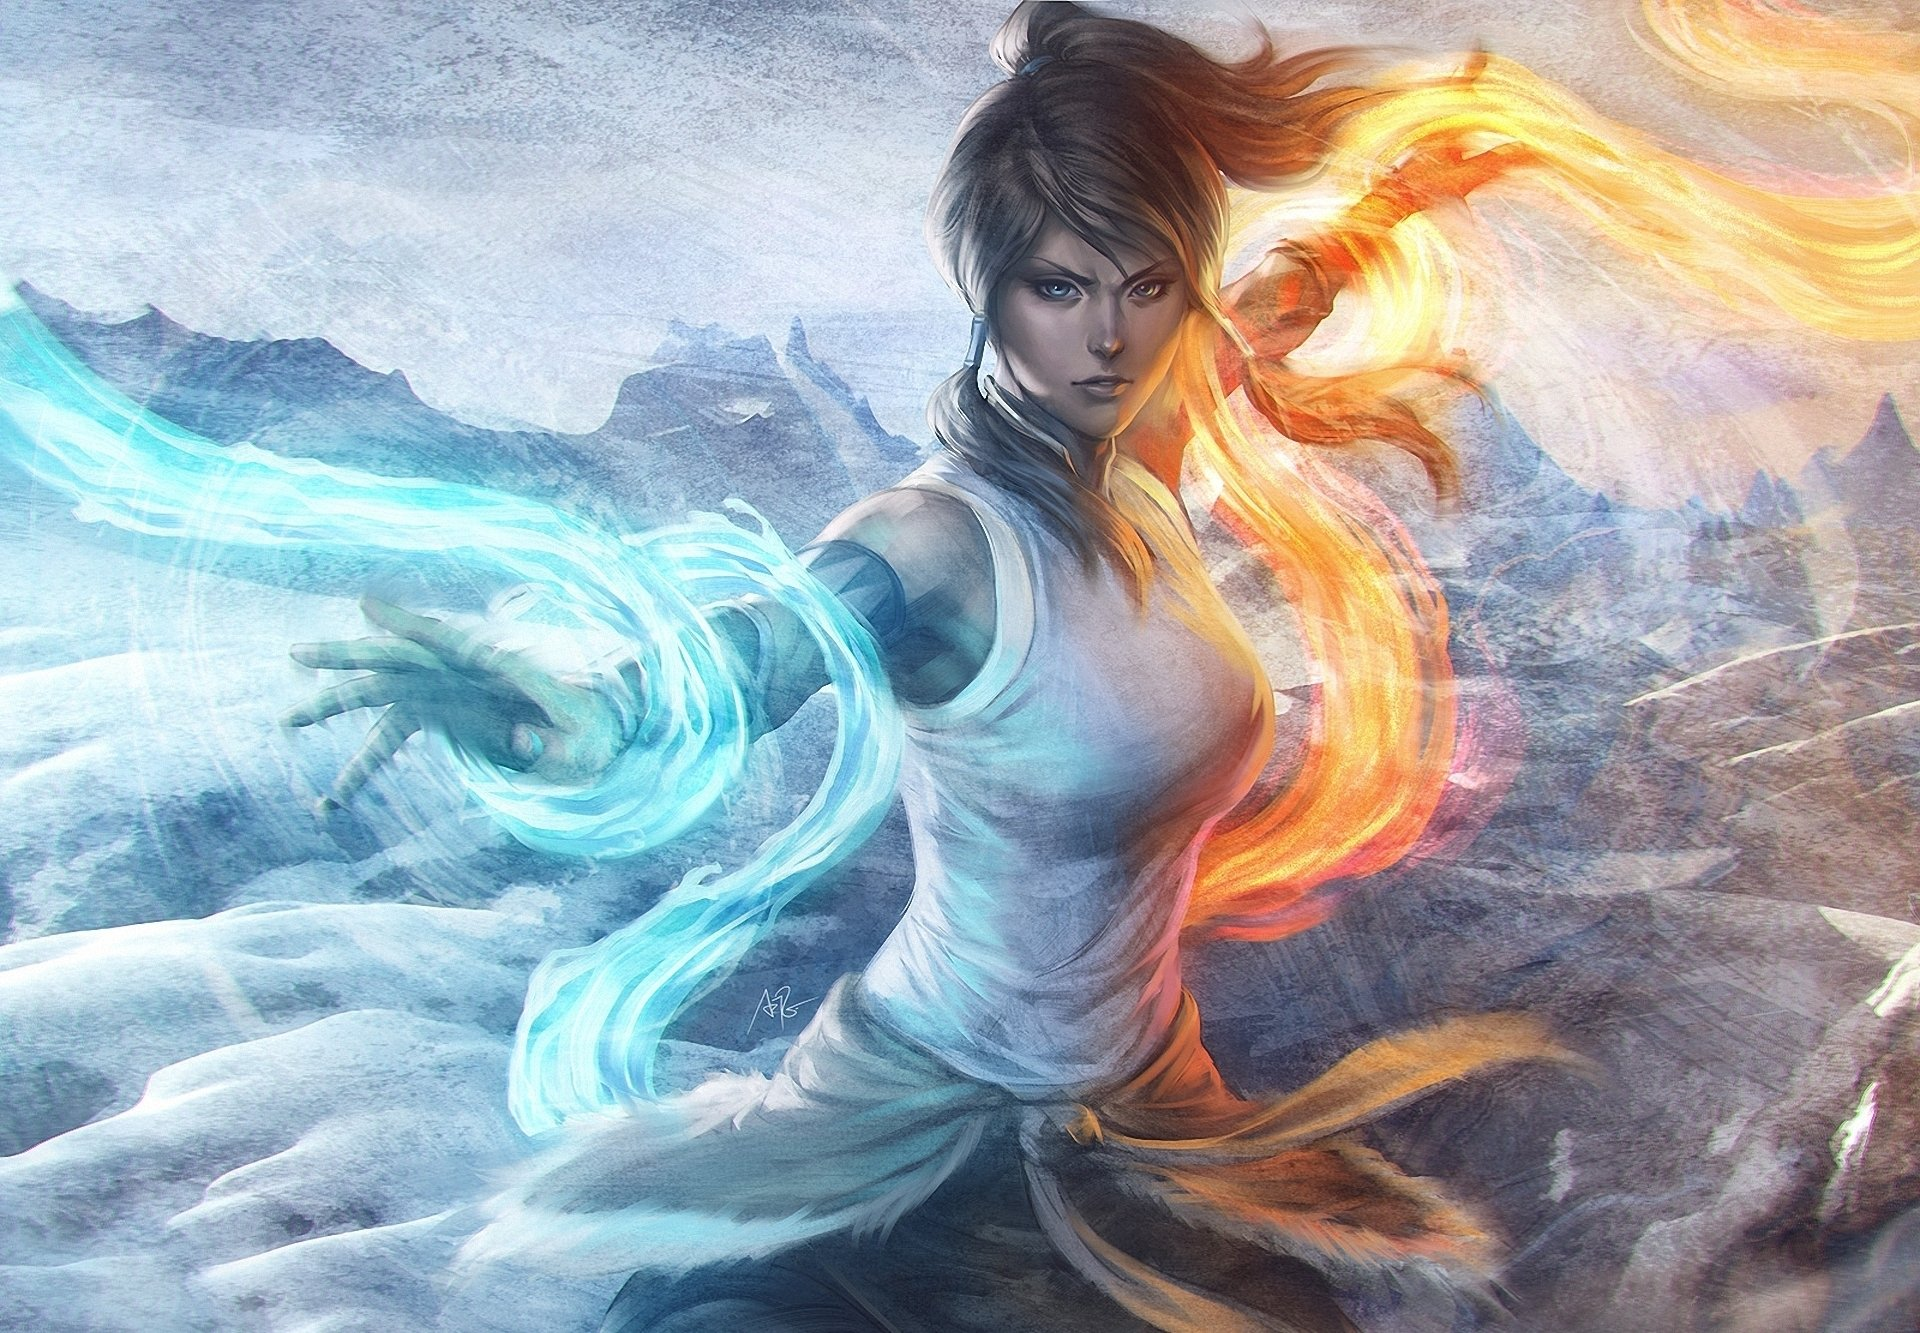 94 avatar: the legend of korra hd wallpapers | background images